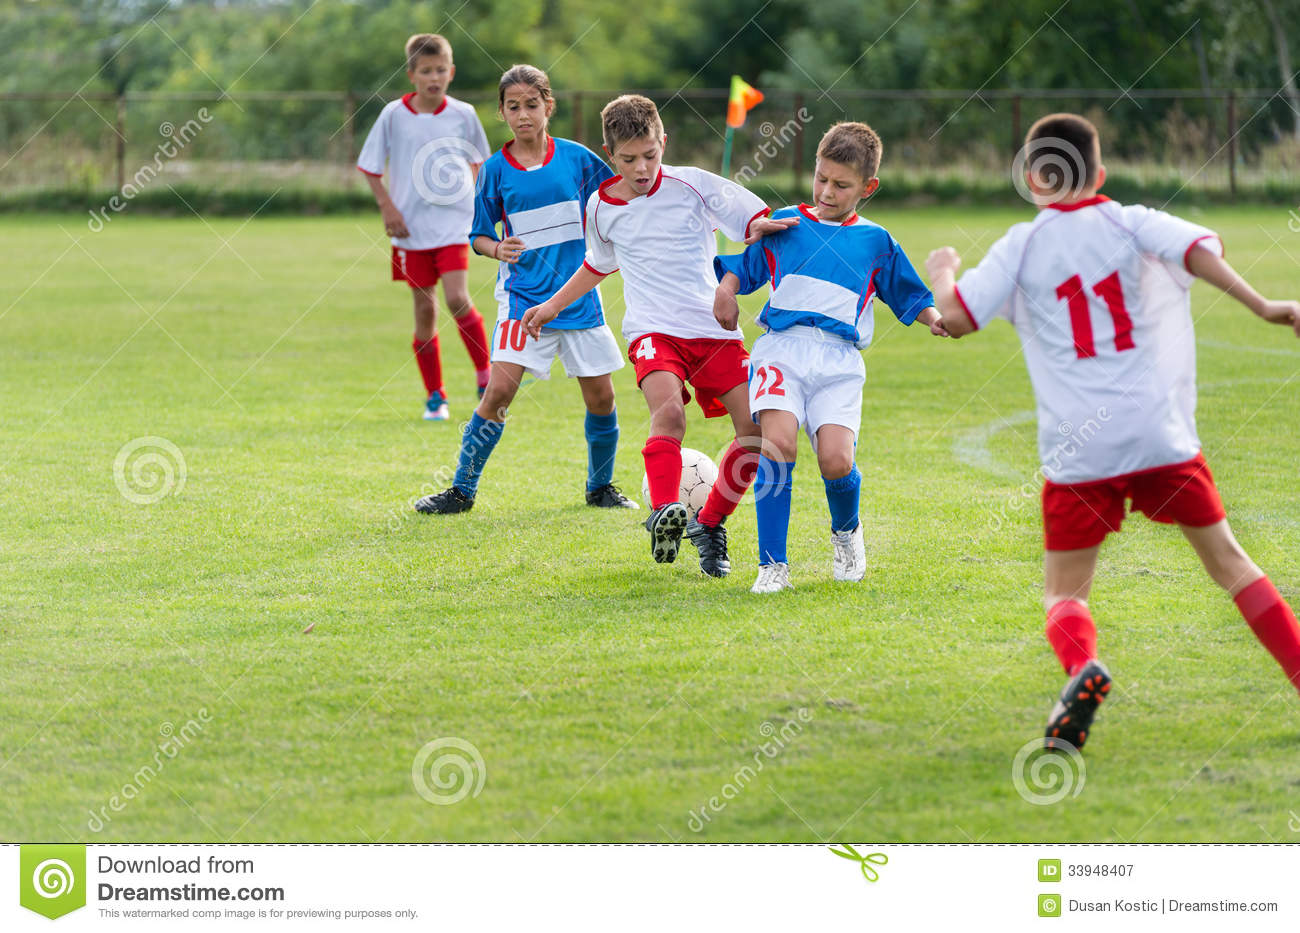 Kids Soccer Royalty Free Stock Photography - Image: 33948407